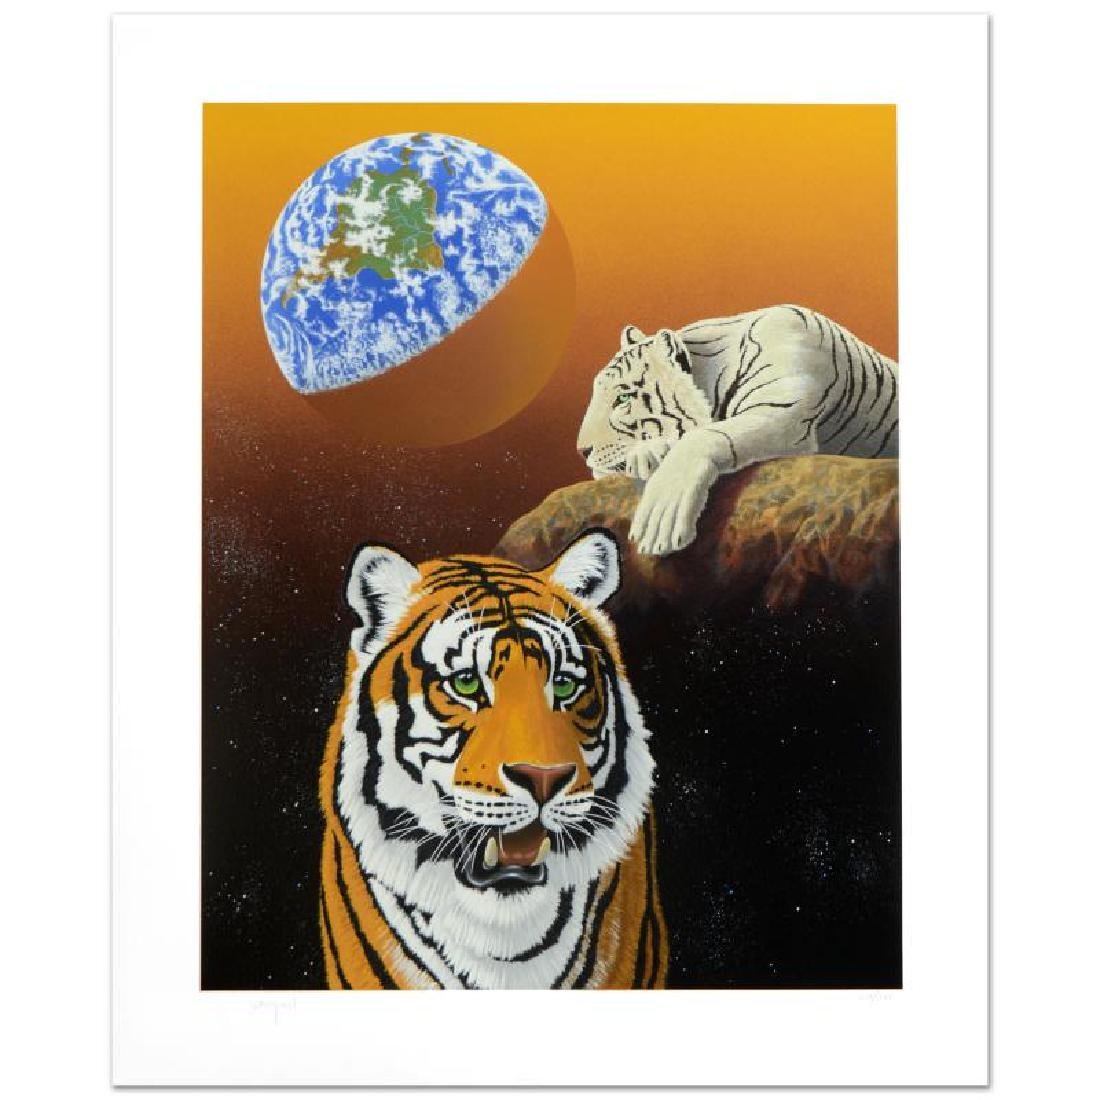 Our Home Too III (Tigers) by Schimmel, William